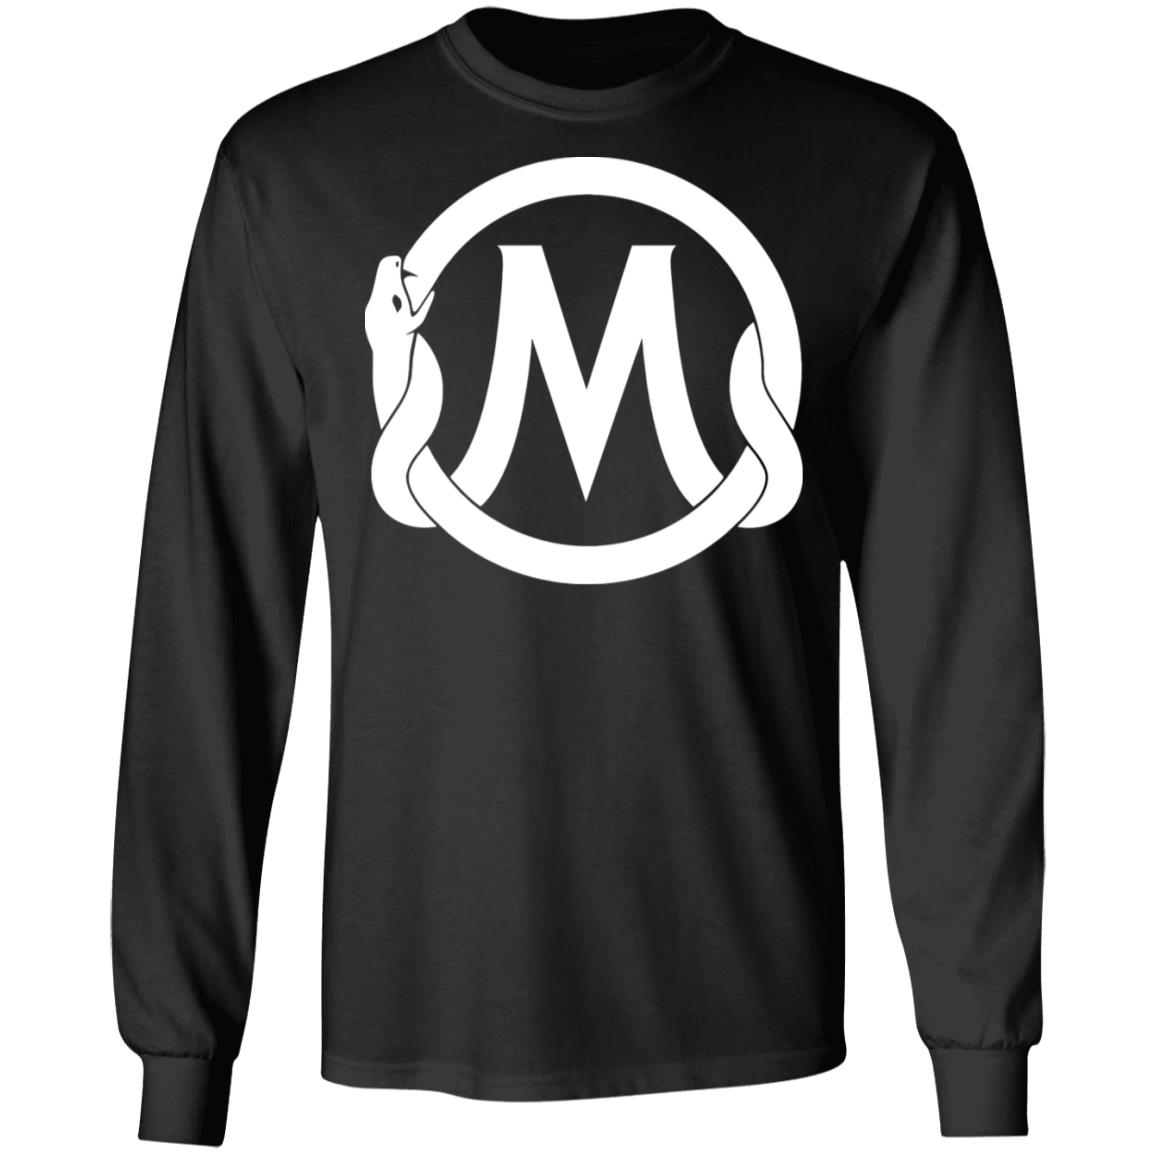 Mamba sports academy team core black long sleeve